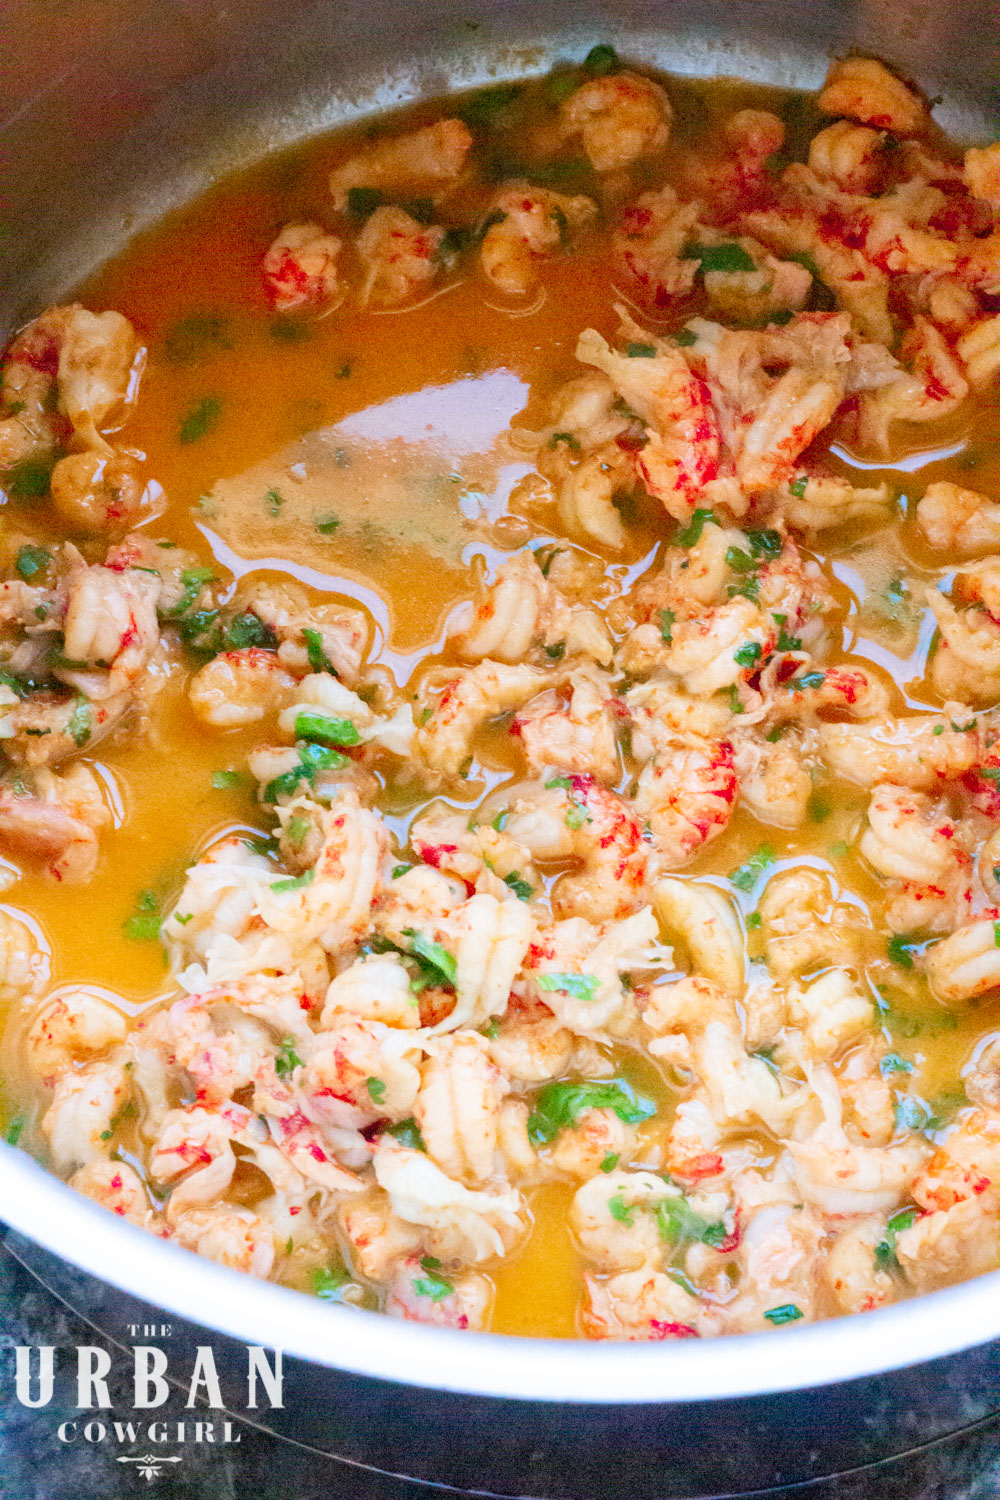 A close up of bright red poached crawfish tails in beautiful orange red butter.